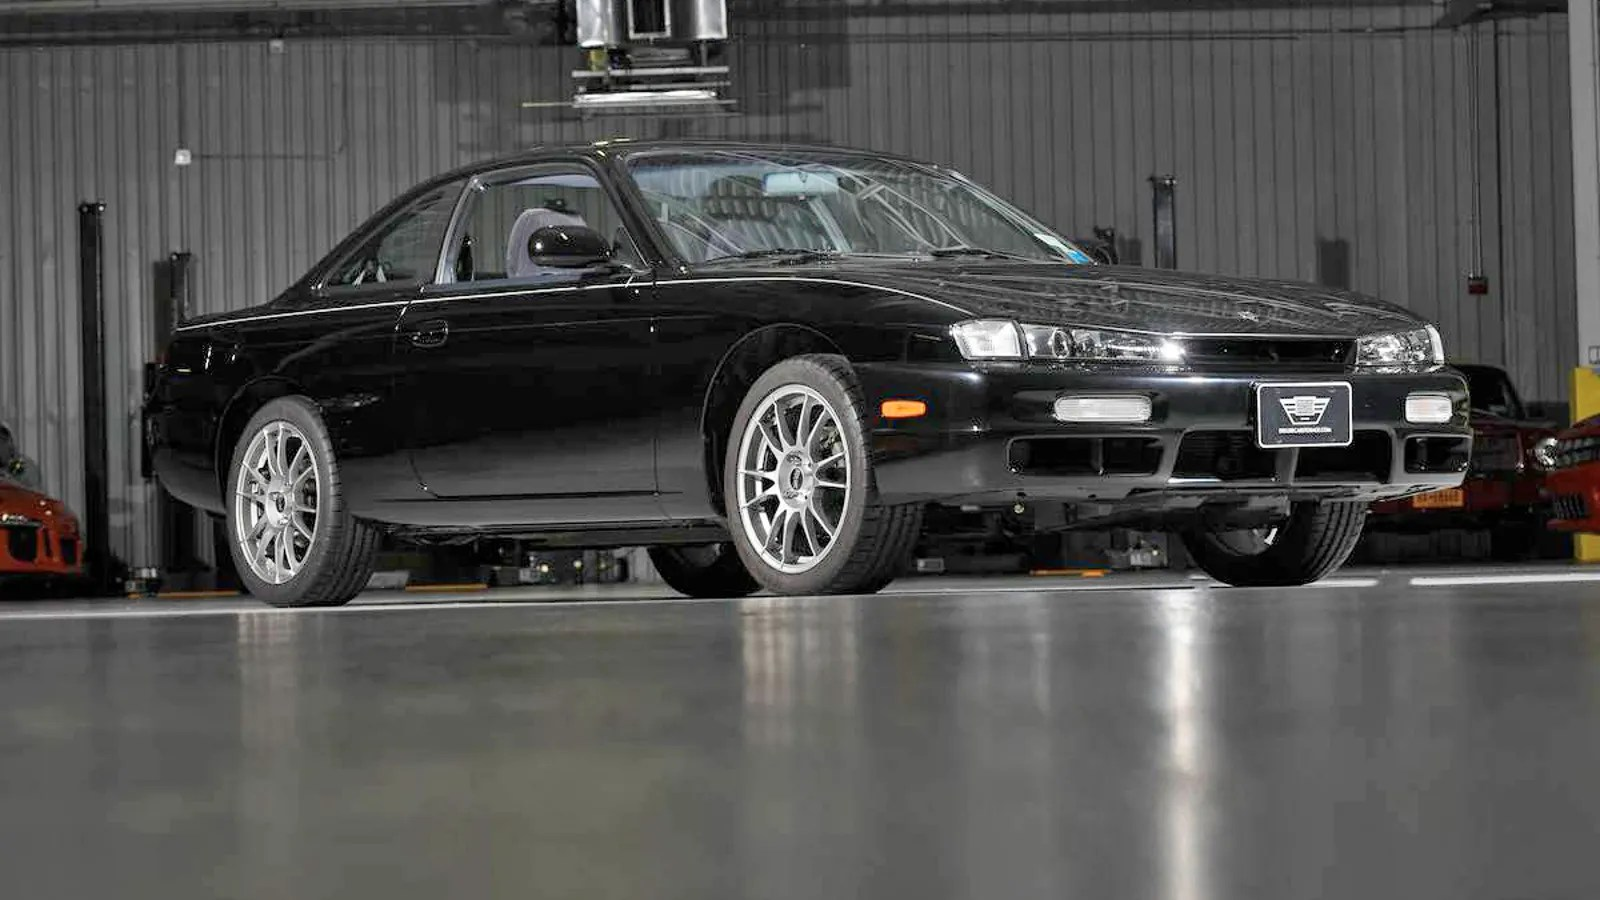 hight resolution of this completely unmolested nissan 240sx has 676 miles and was kept in a living room